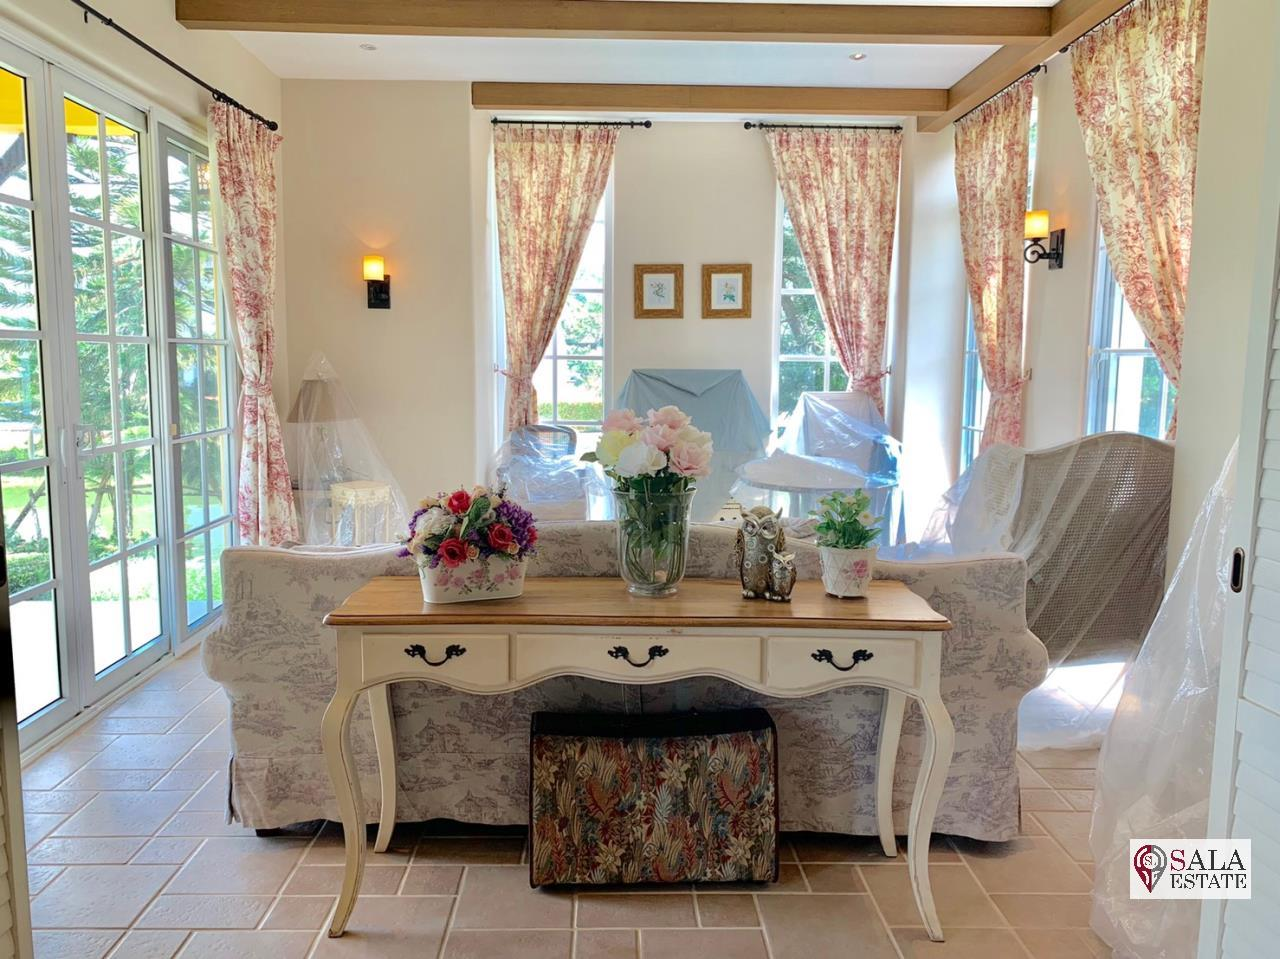 SALA ESTATE Agency's (FOR SALE ONLY 18 MB) PRIVATE LUXURY HOUSE IN KHAO YAI - MAGNOLIAS FRENCH COUNTRY KHAO YAI 3